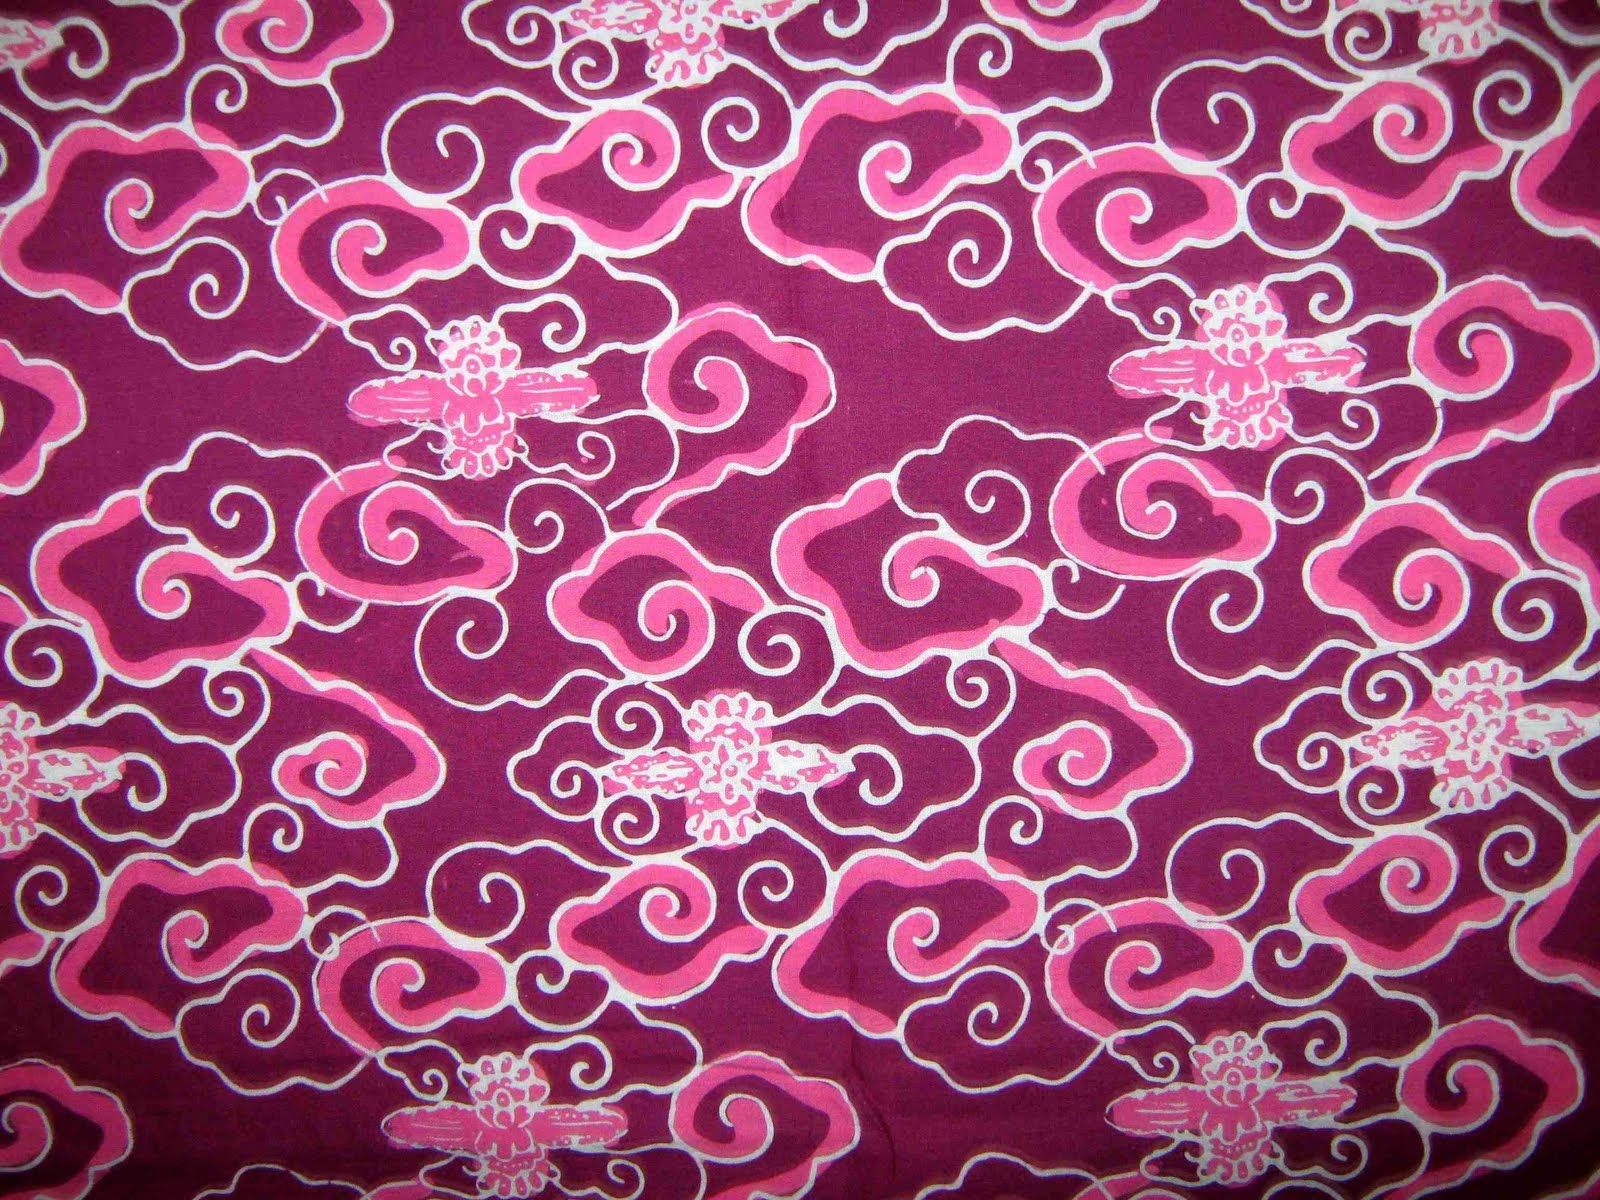 Indonesian Culture Batik Indonesia Authentic HD Wallpaper for Desktop Background  Places to